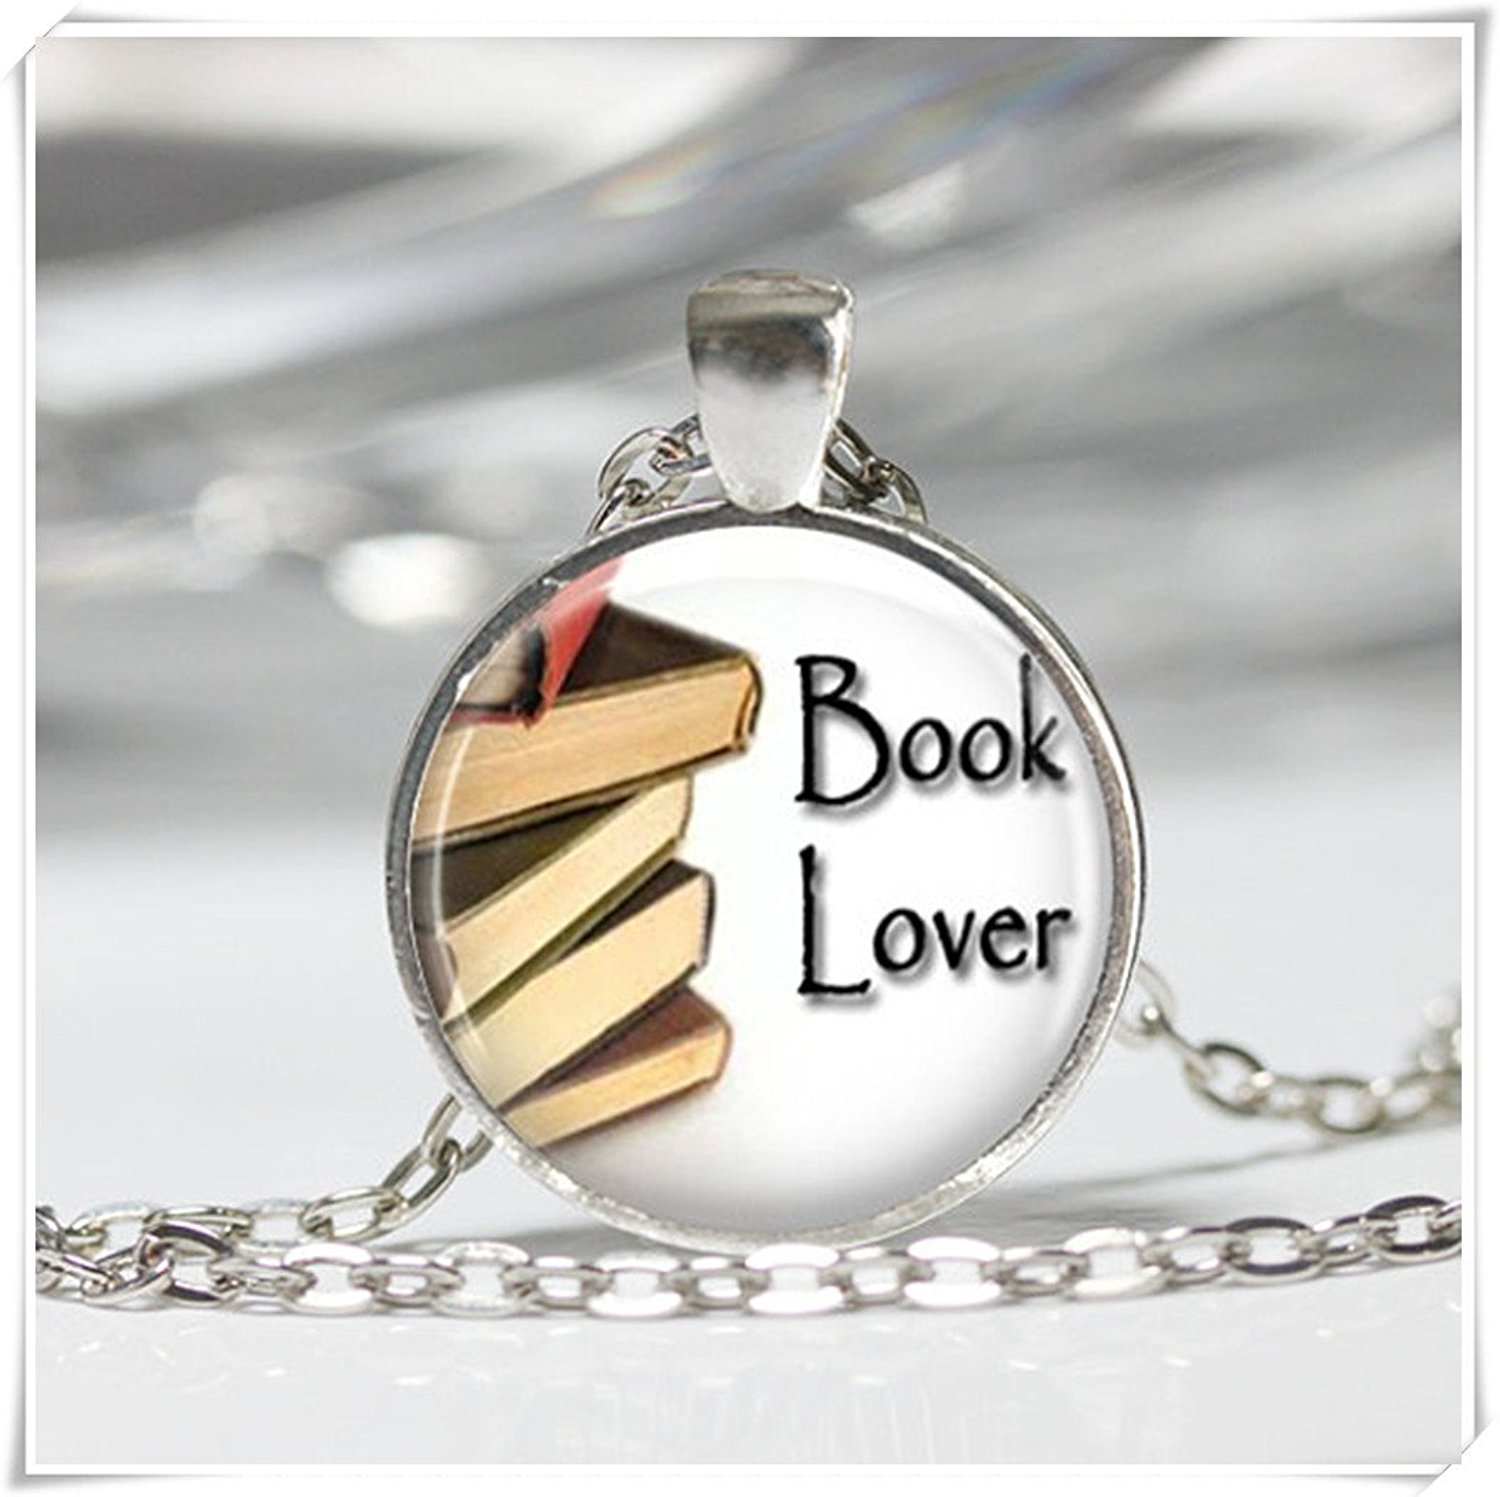 debb821aa2f Buy Books the Best Weapon in the World Book